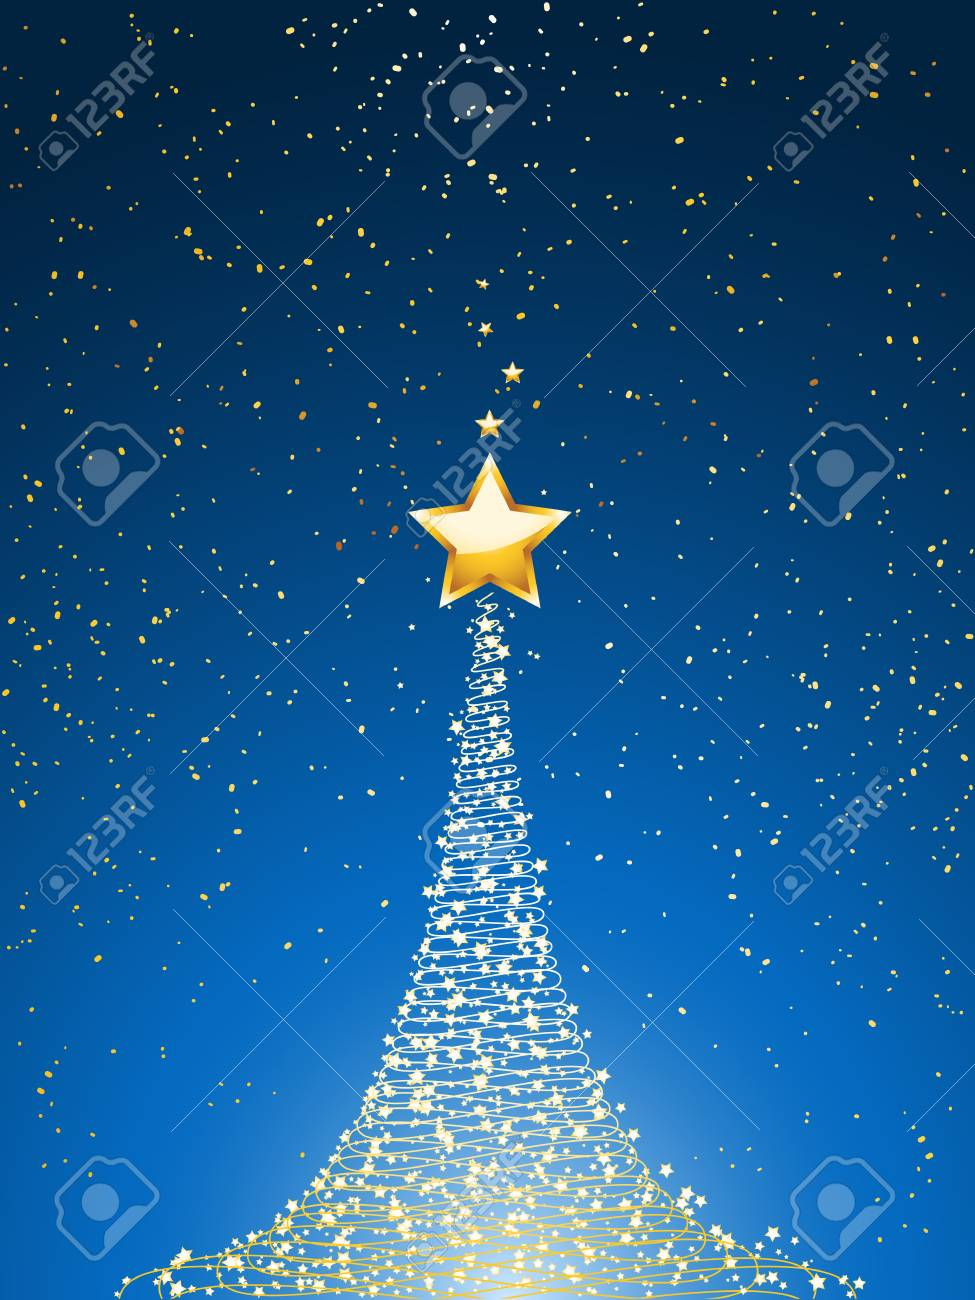 Christmas Background Images Portrait.Golden Glowing Christmas Tree And Star Over Blue Portrait Background